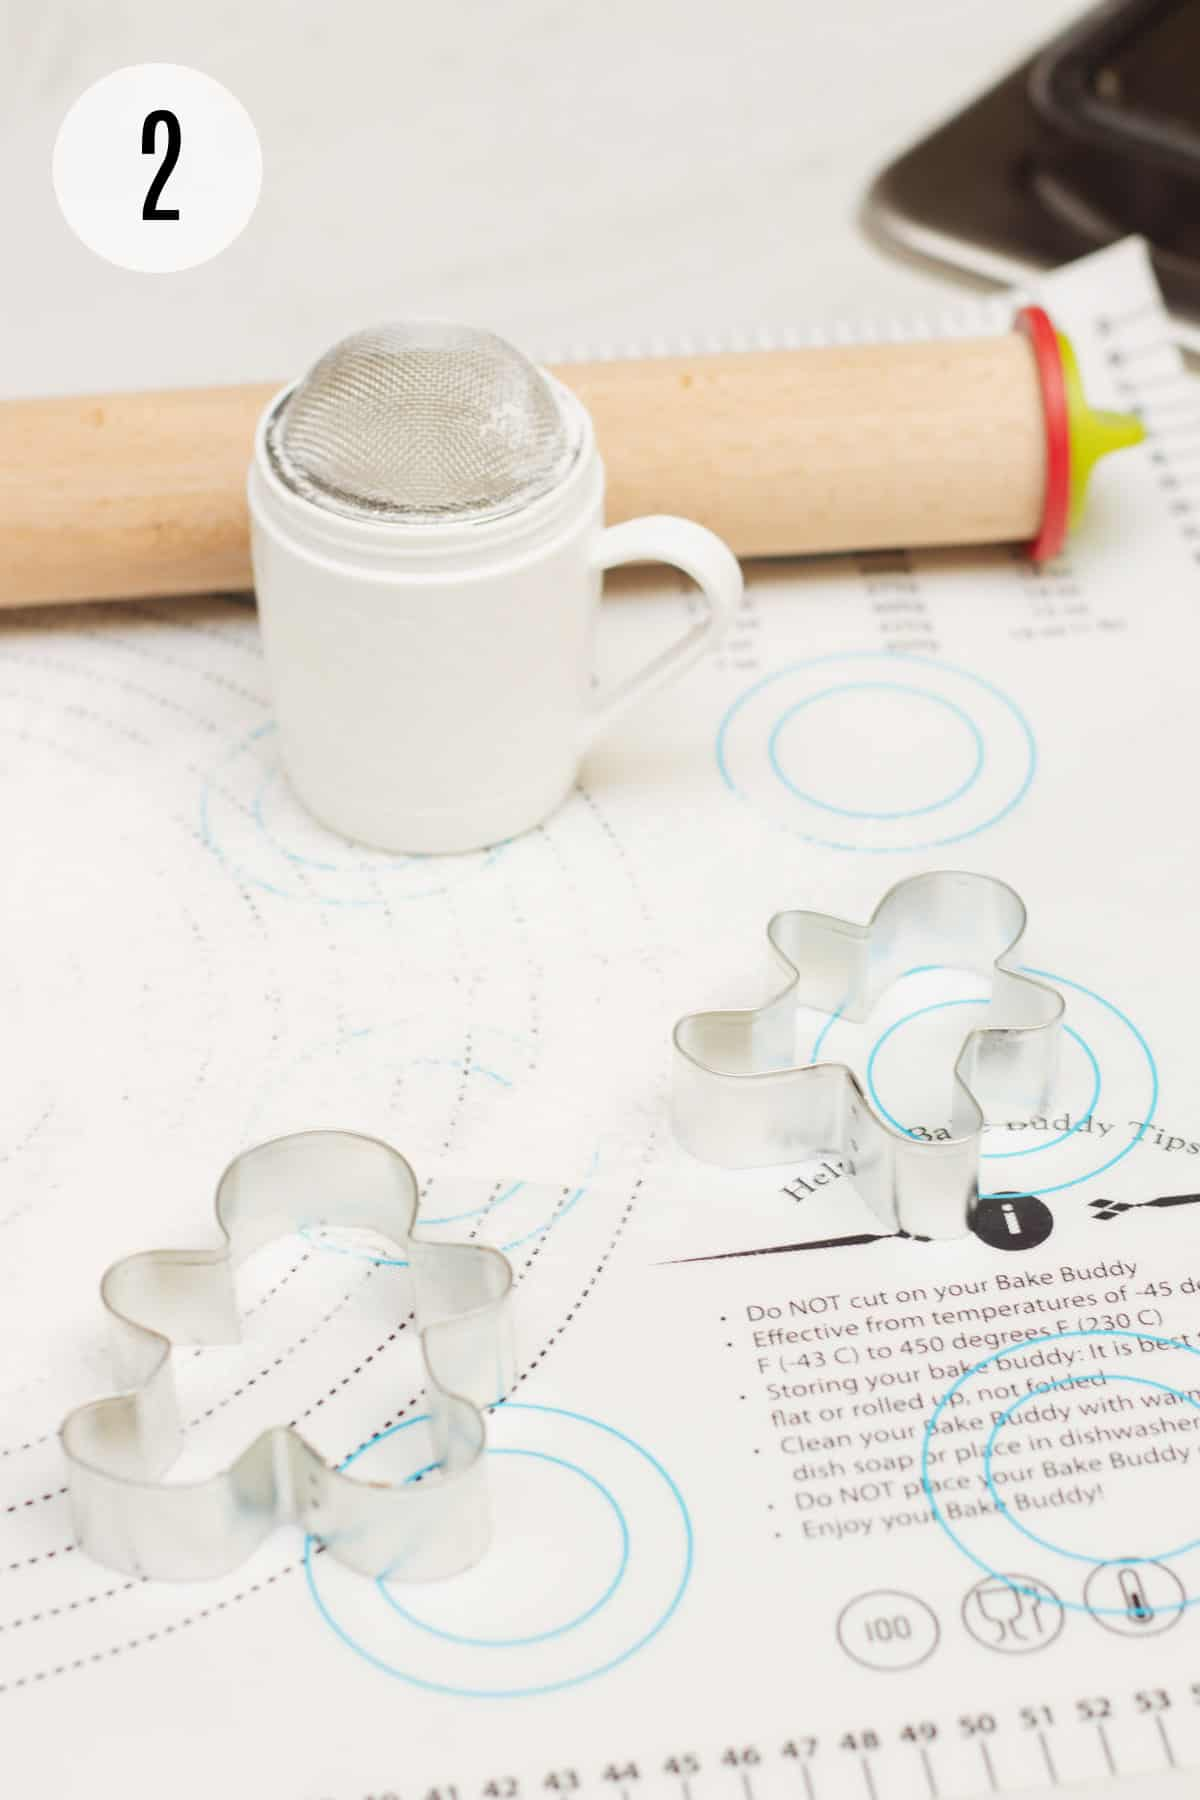 Printed baking mat with gingerbread man cookie cutters, powdered sugar/flour shaker and wooden rolling pin.